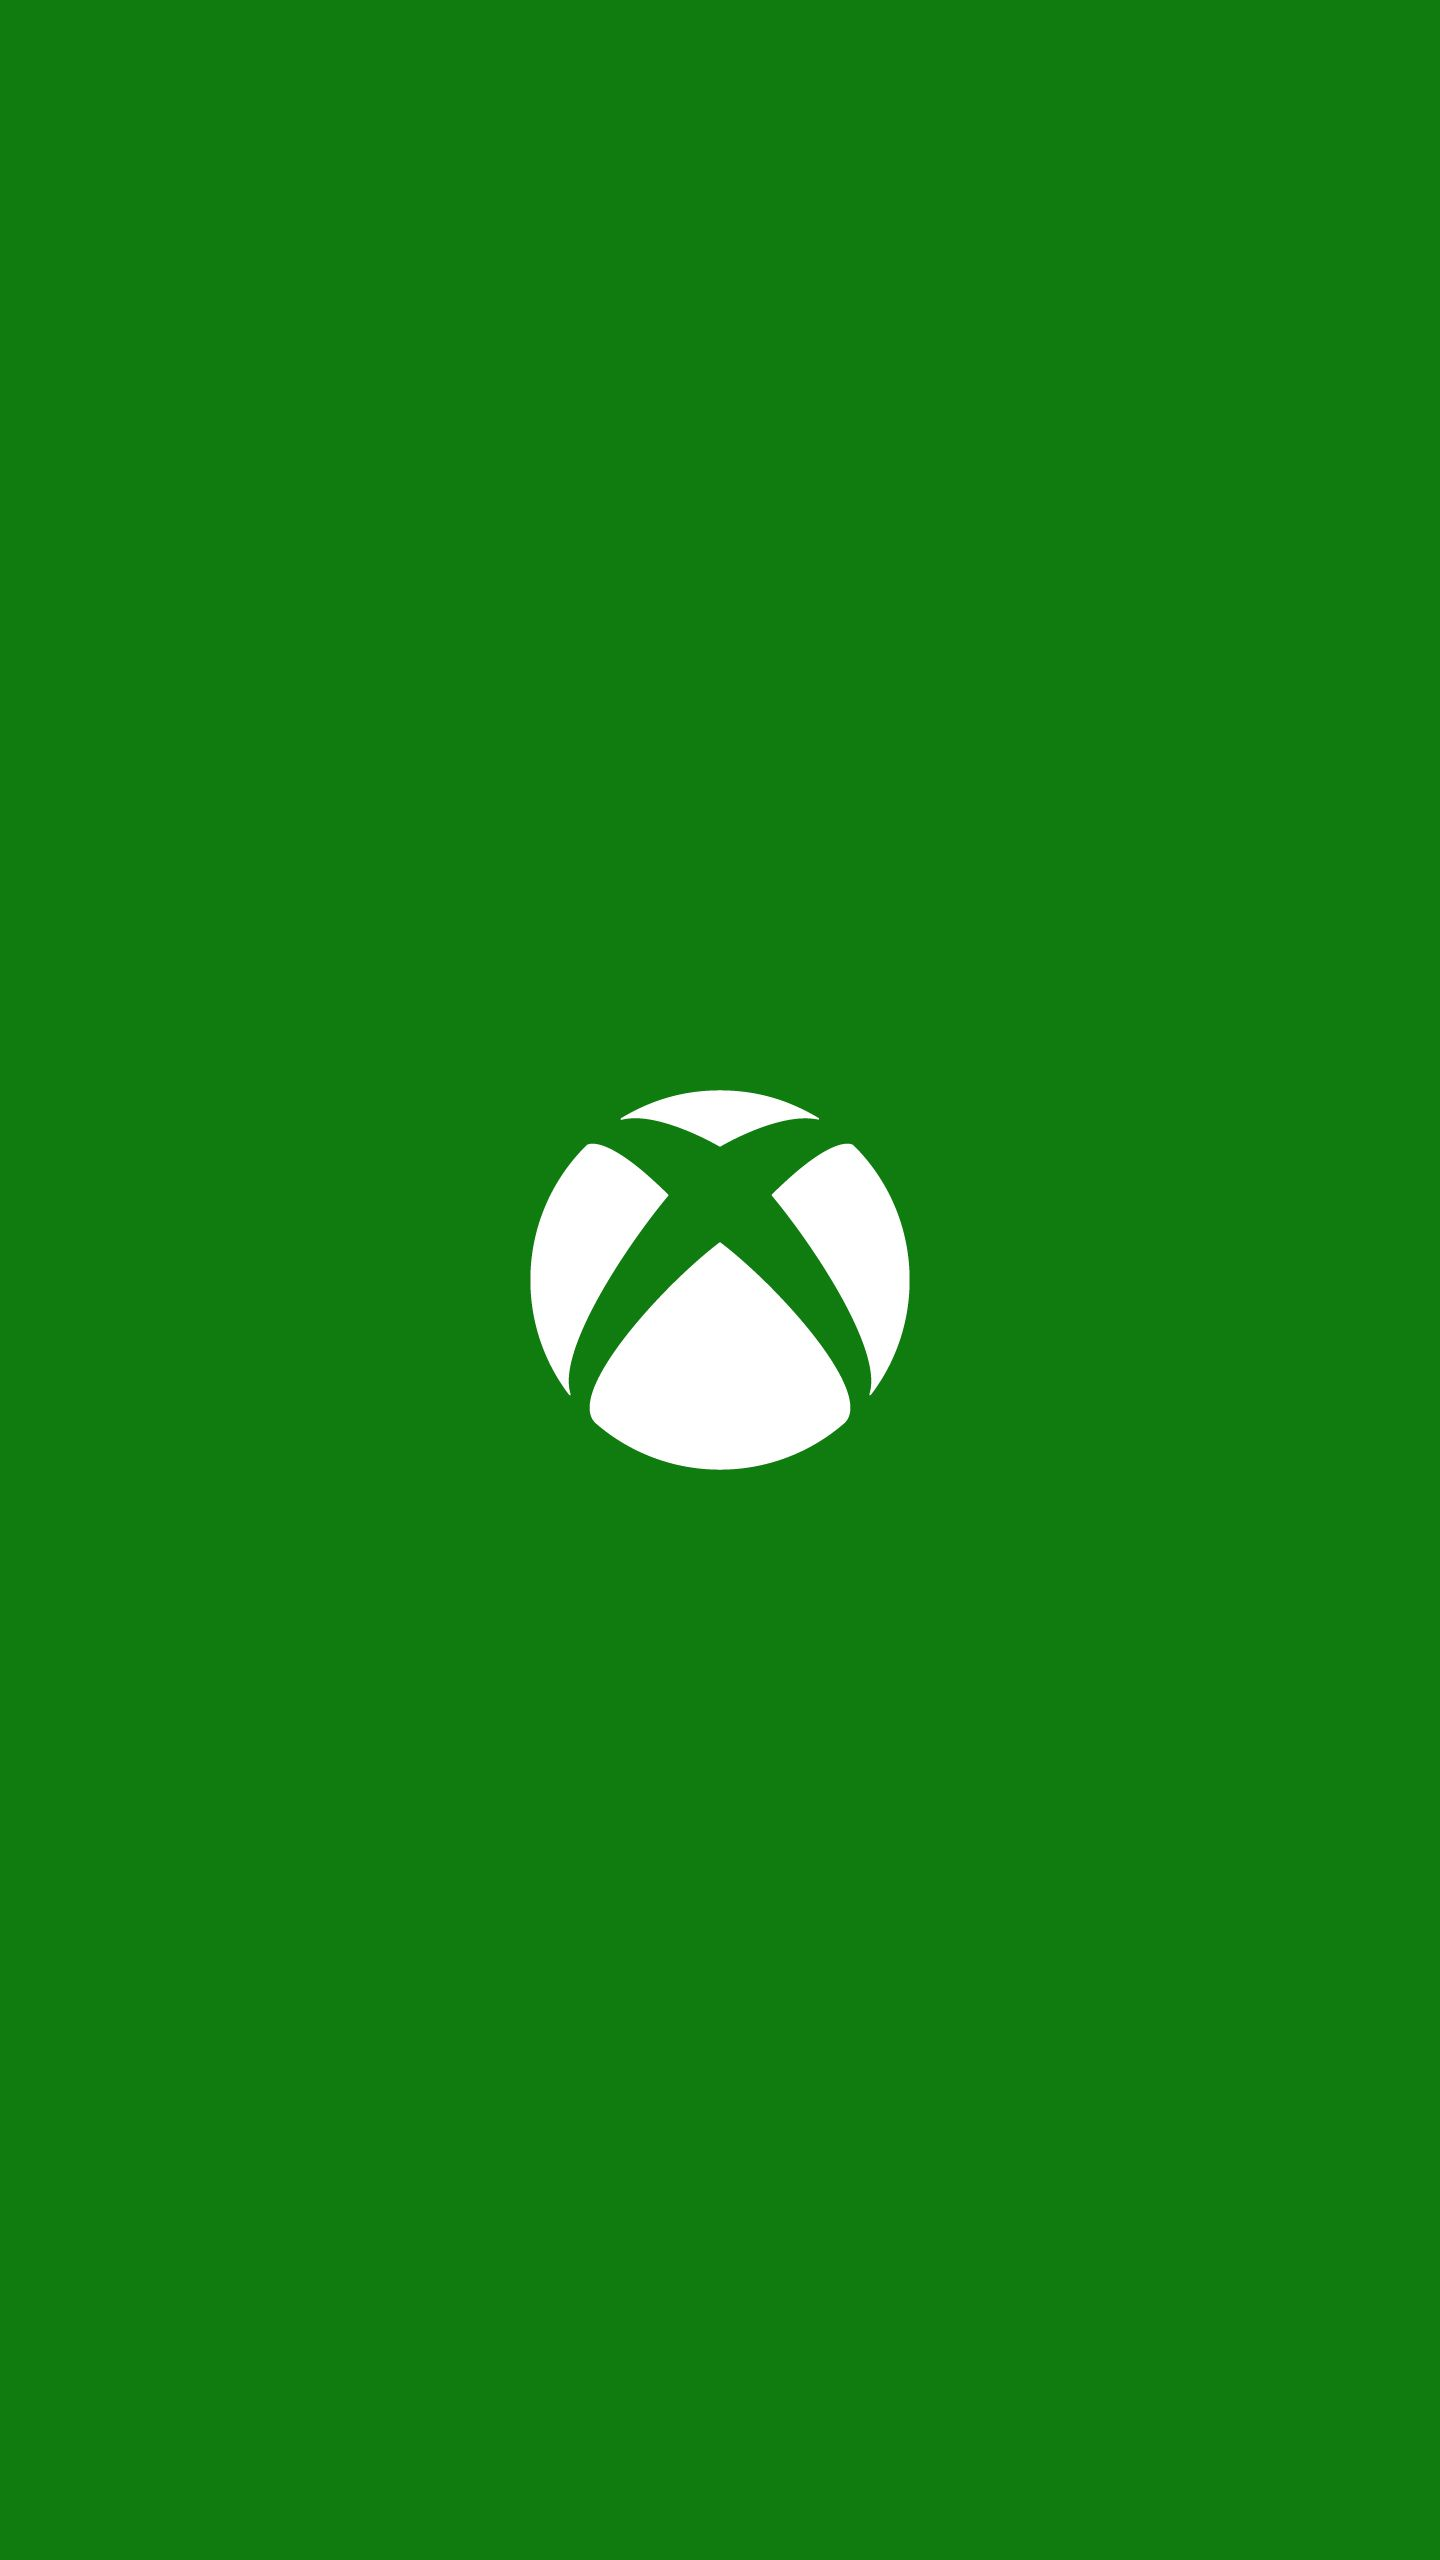 Xbox Phone Wallpapers Top Free Xbox Phone Backgrounds Wallpaperaccess